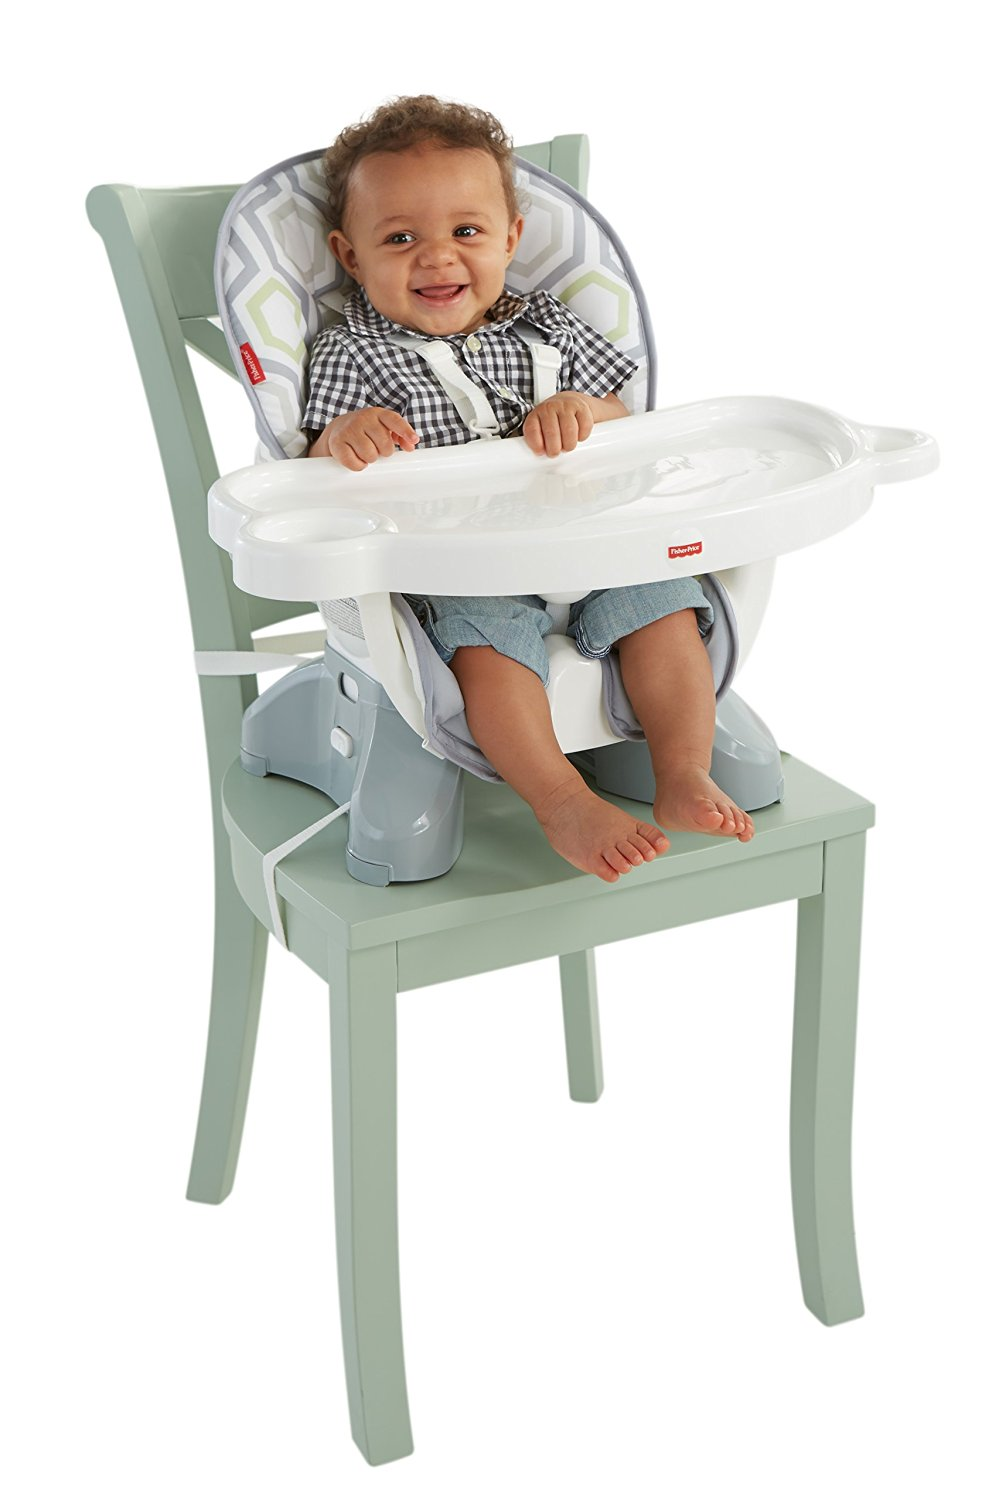 f0b9cede6cbcf The Top 8 Best Baby High Chairs in 2018 – reviews and comparison ...